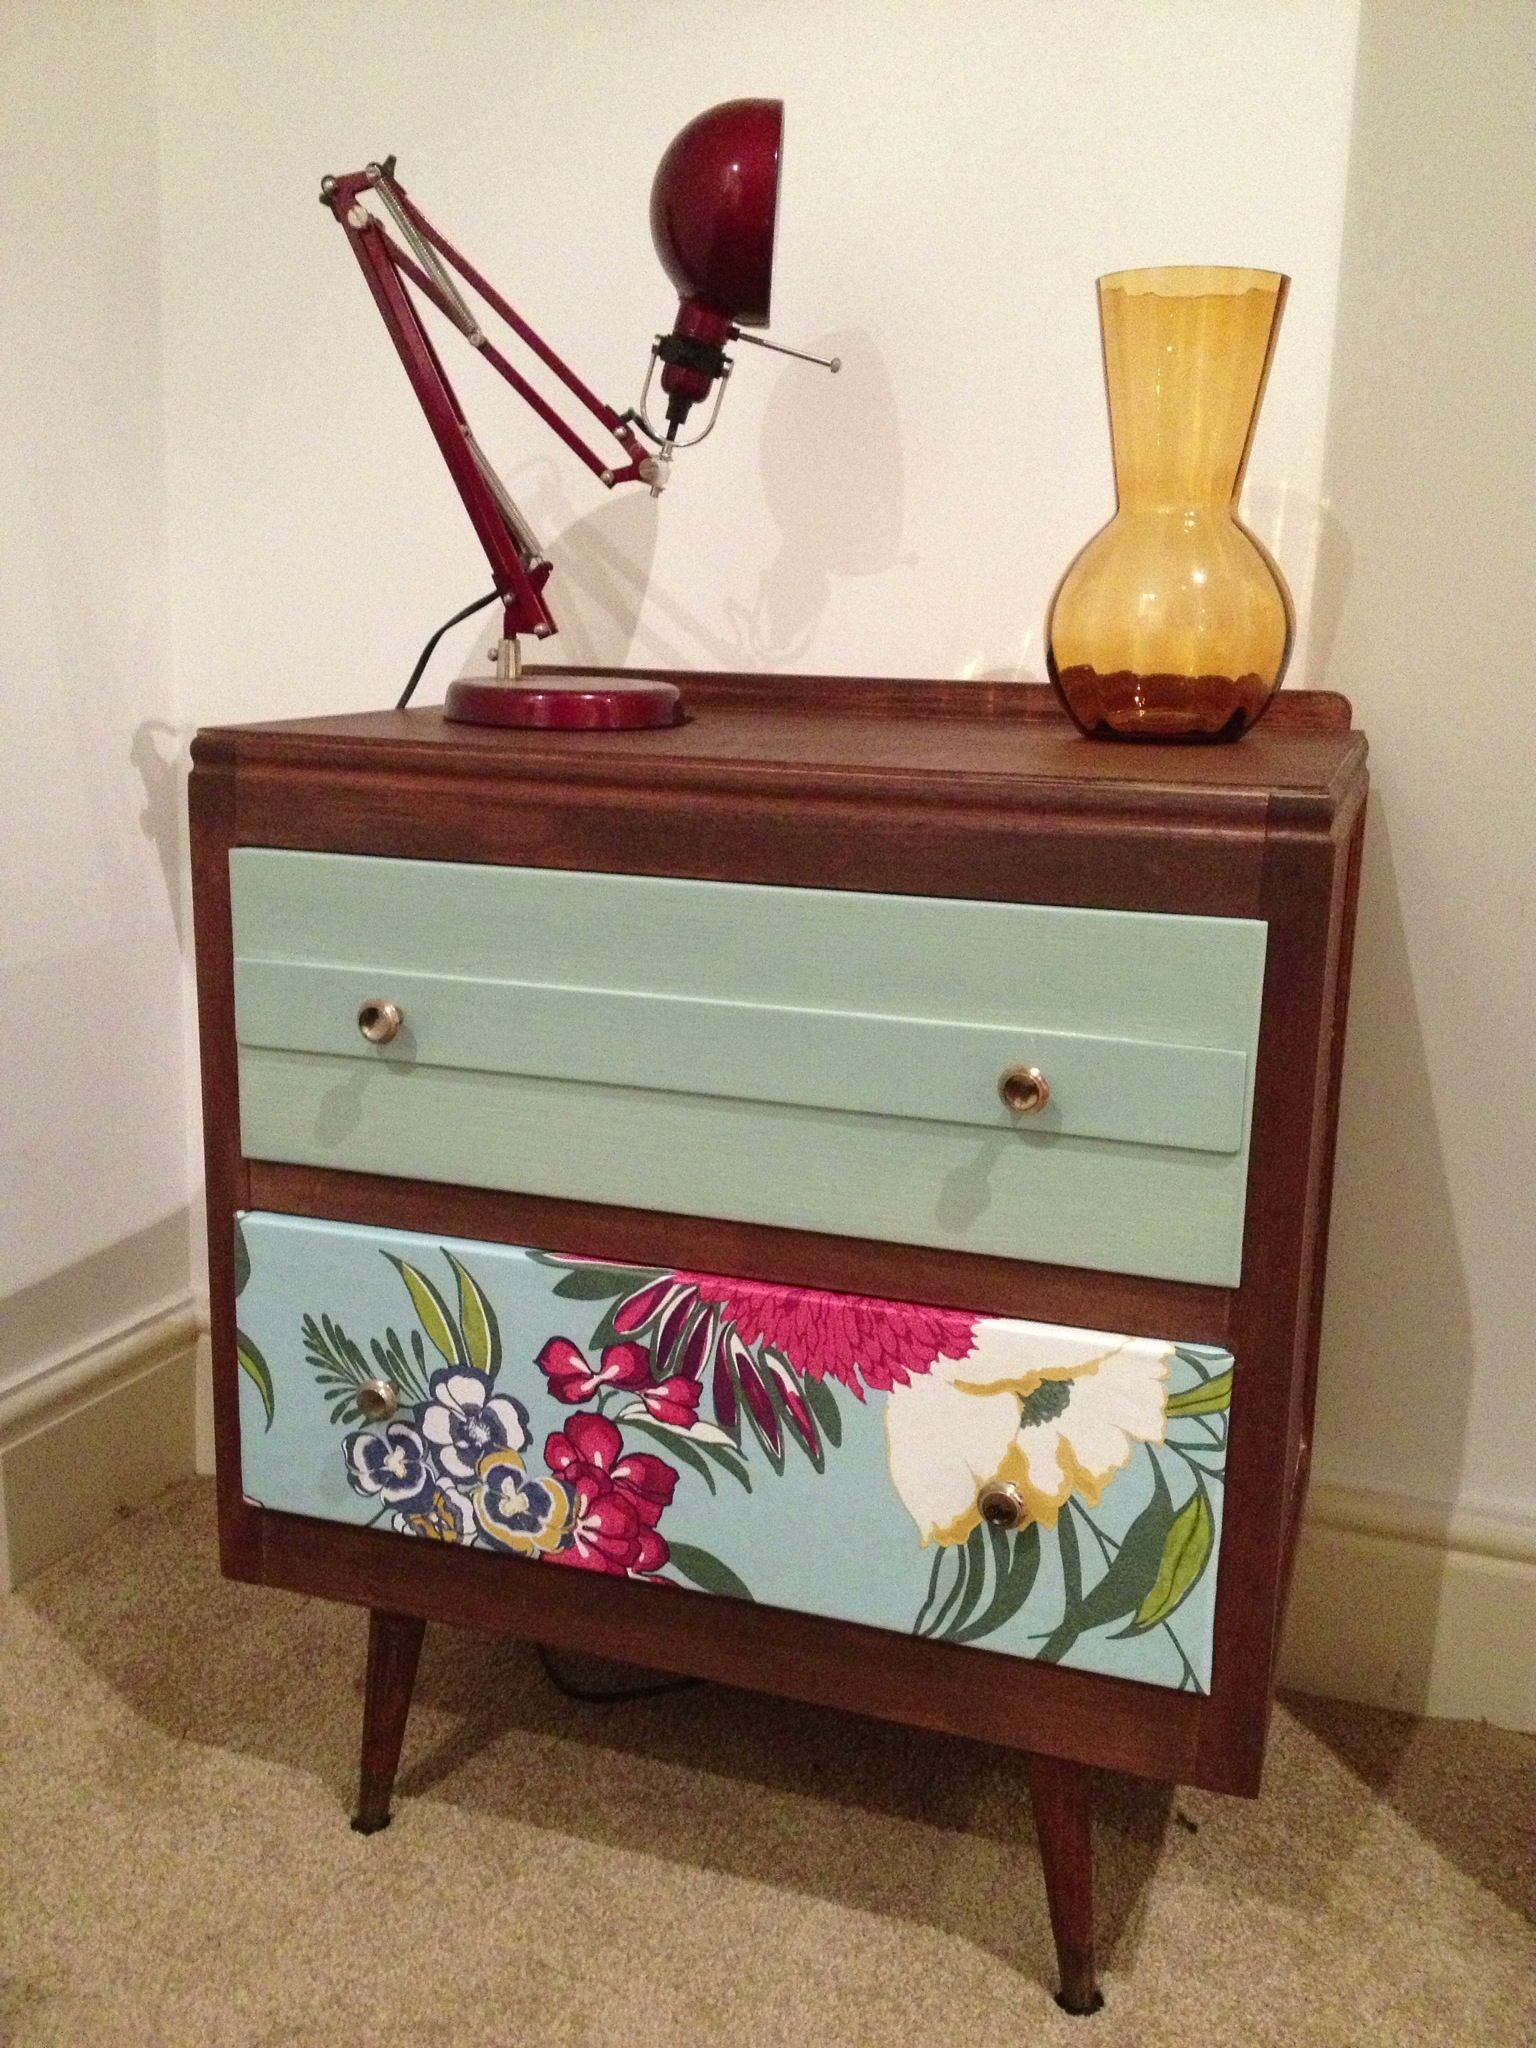 Upcycled drawers diy recycle furniture pinterest for Furniture upcycling